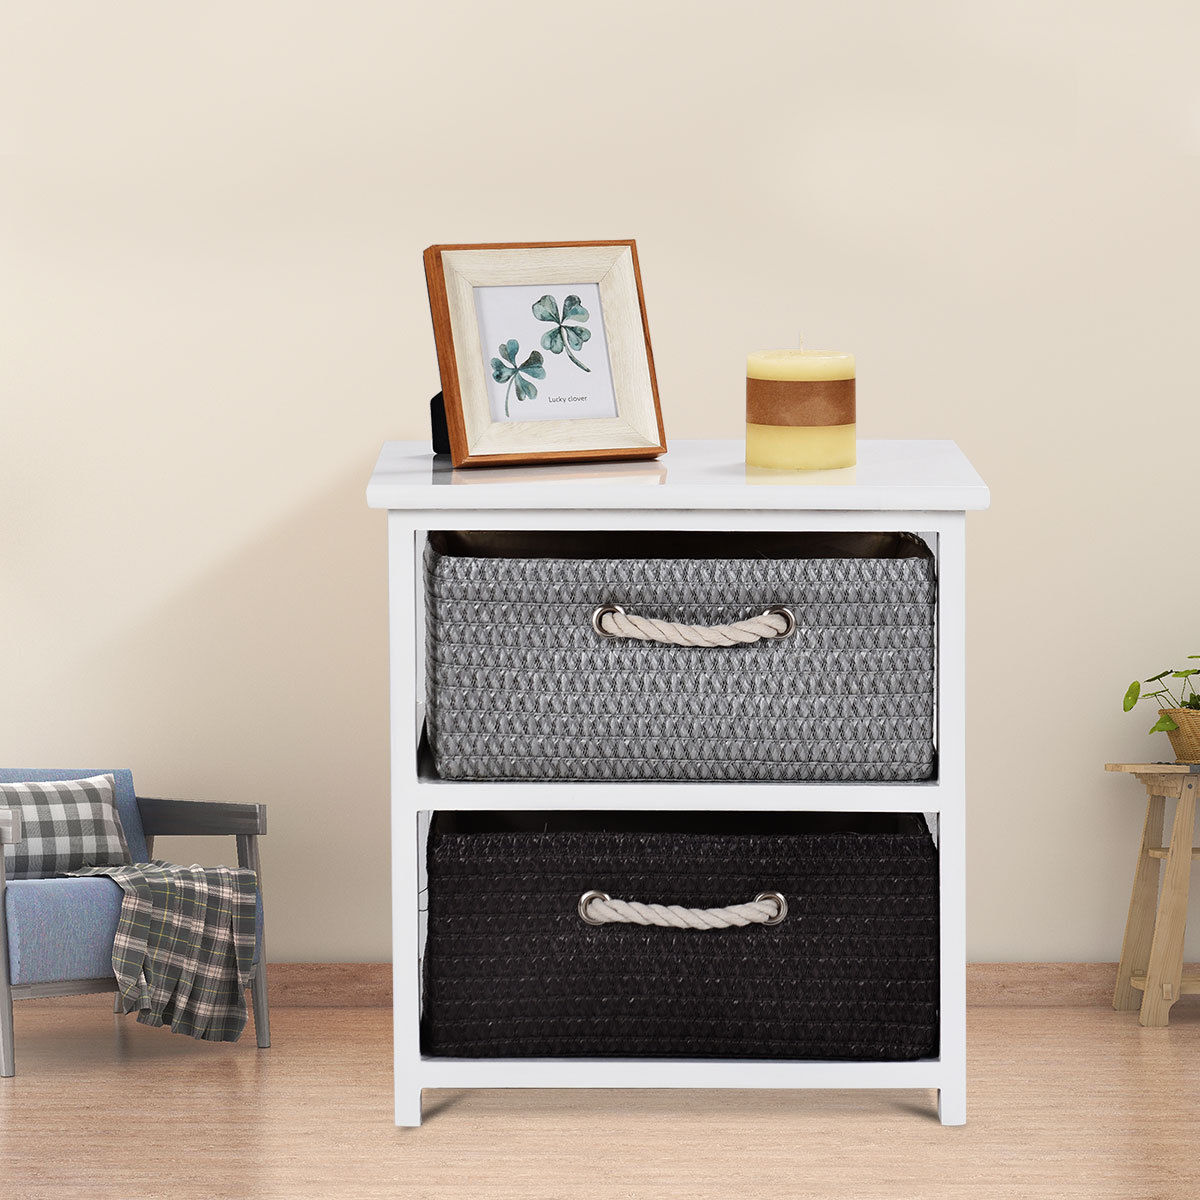 Gymax Wooden Nightstands 2 Weaving Baskets Bedside Table Storage Organizer Side Table